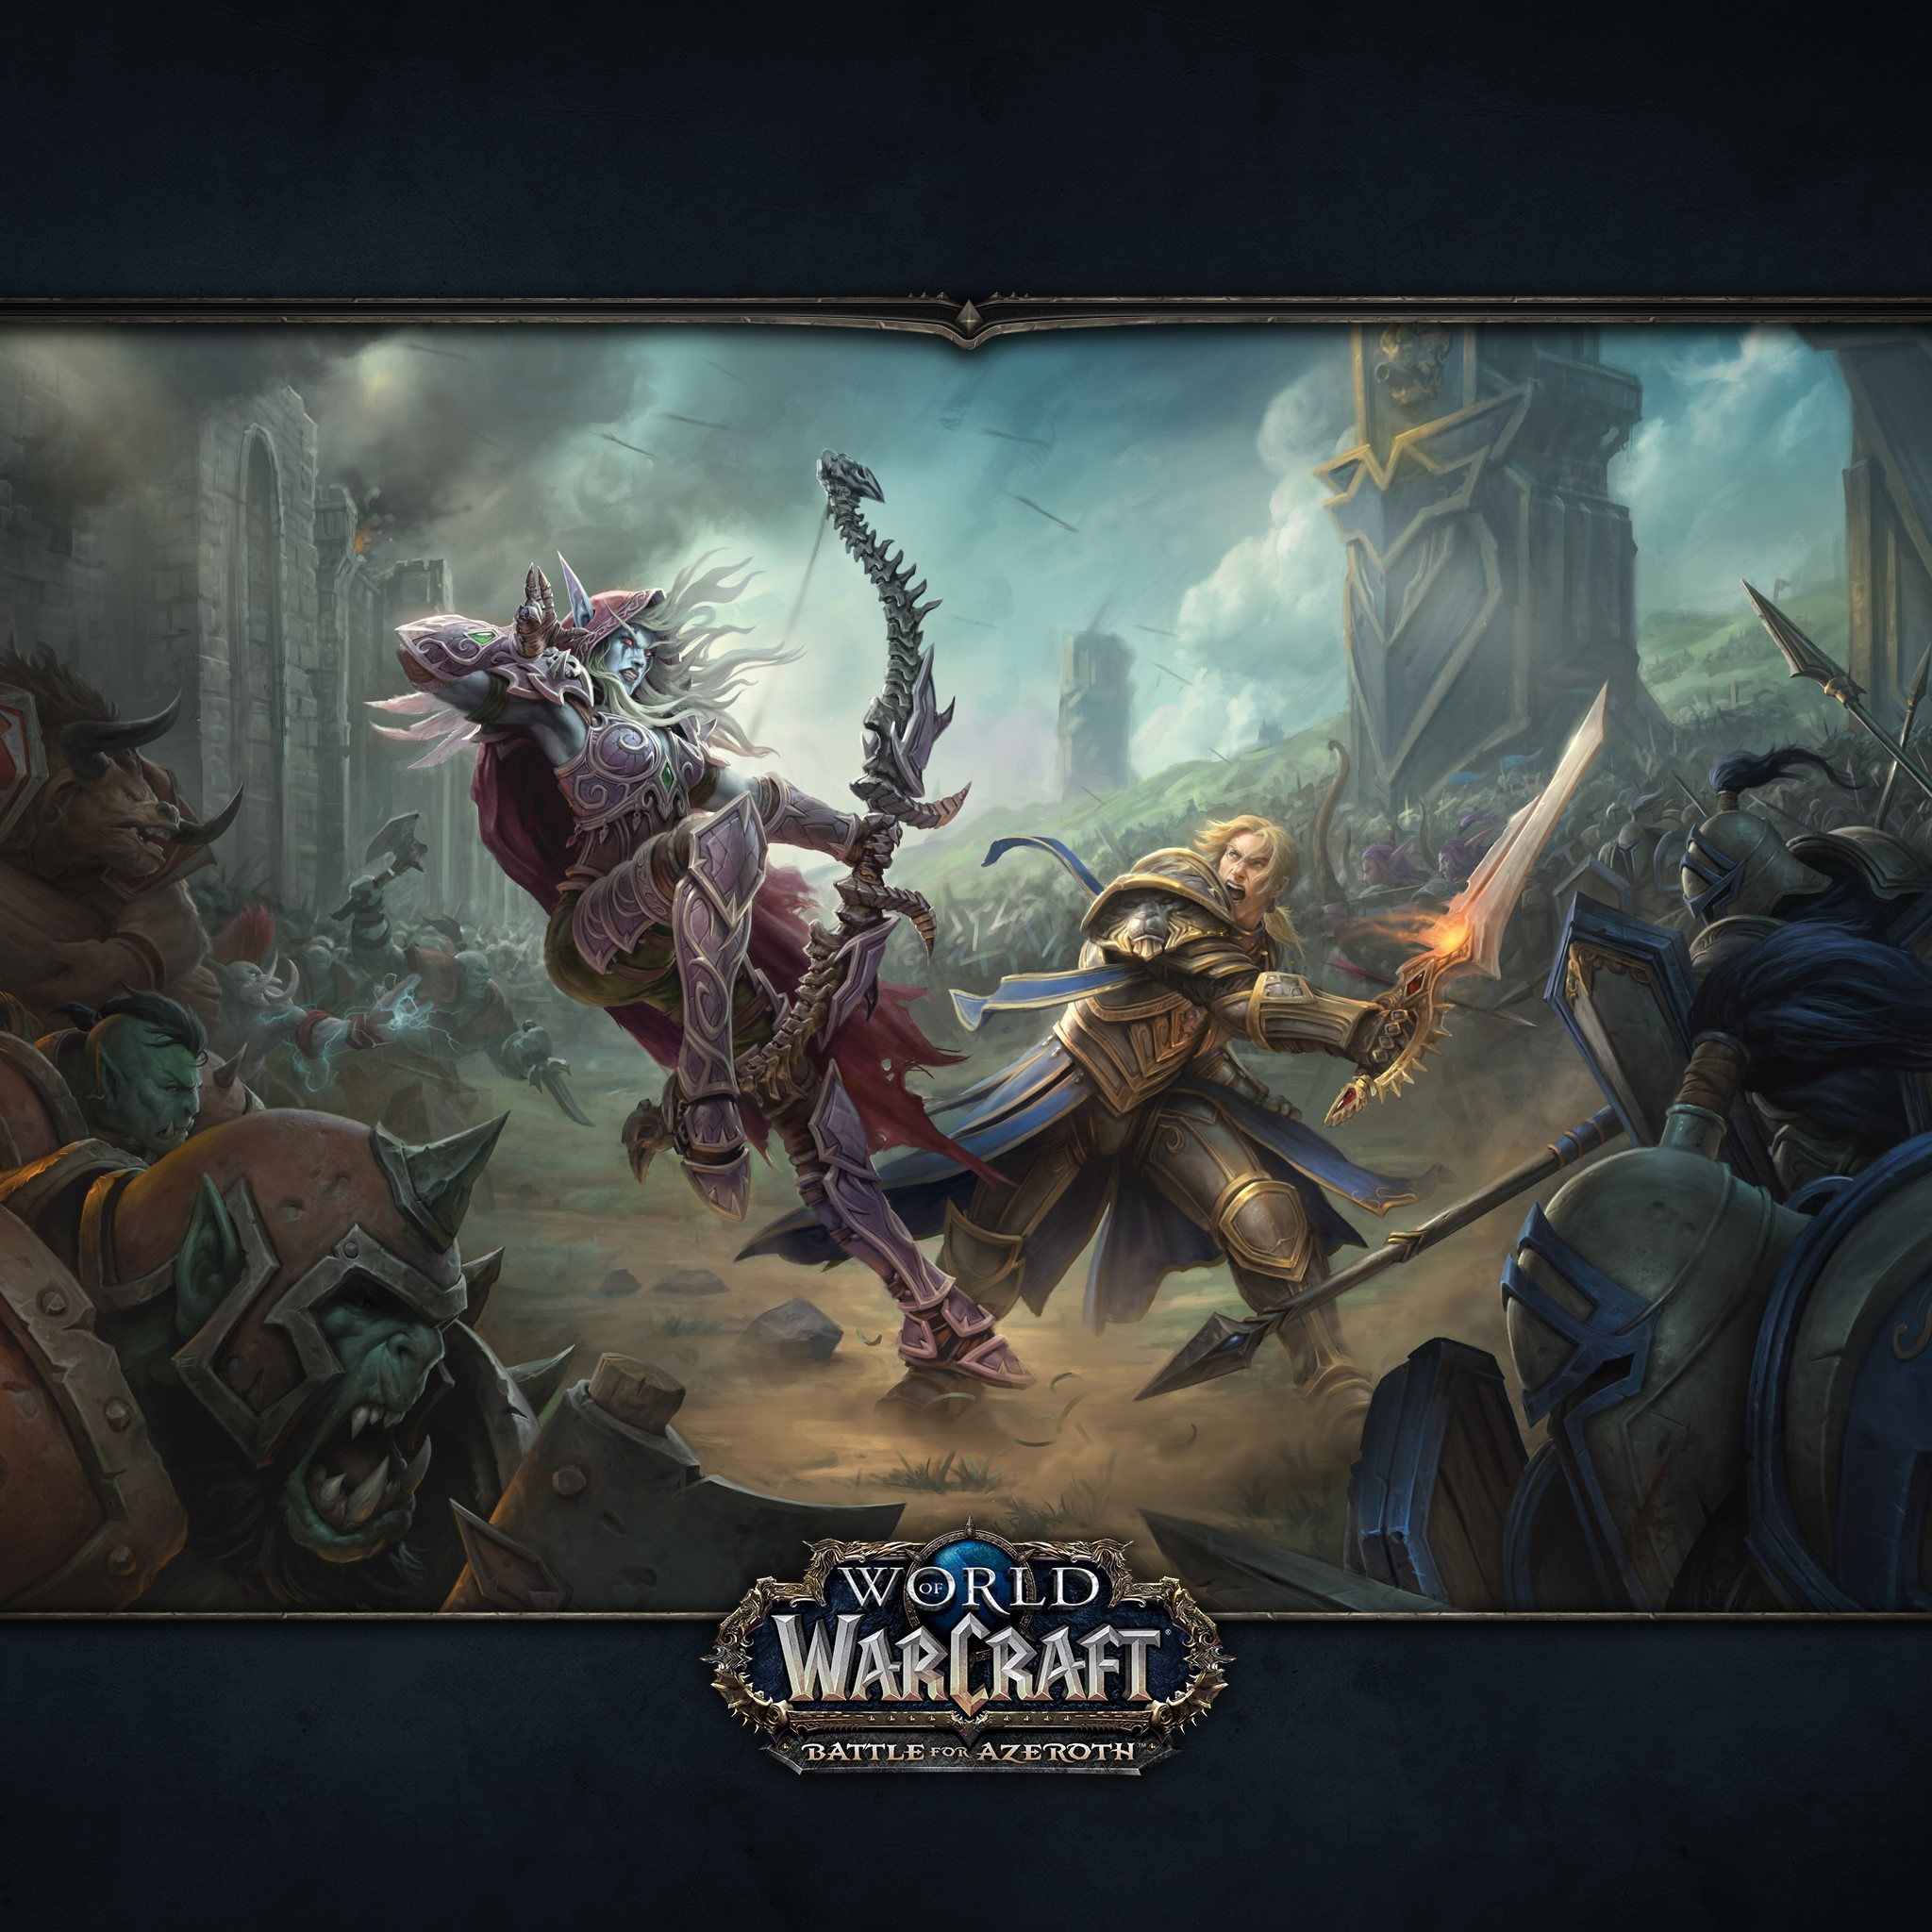 World of Warcraft Battle for Azeroth Beta Key